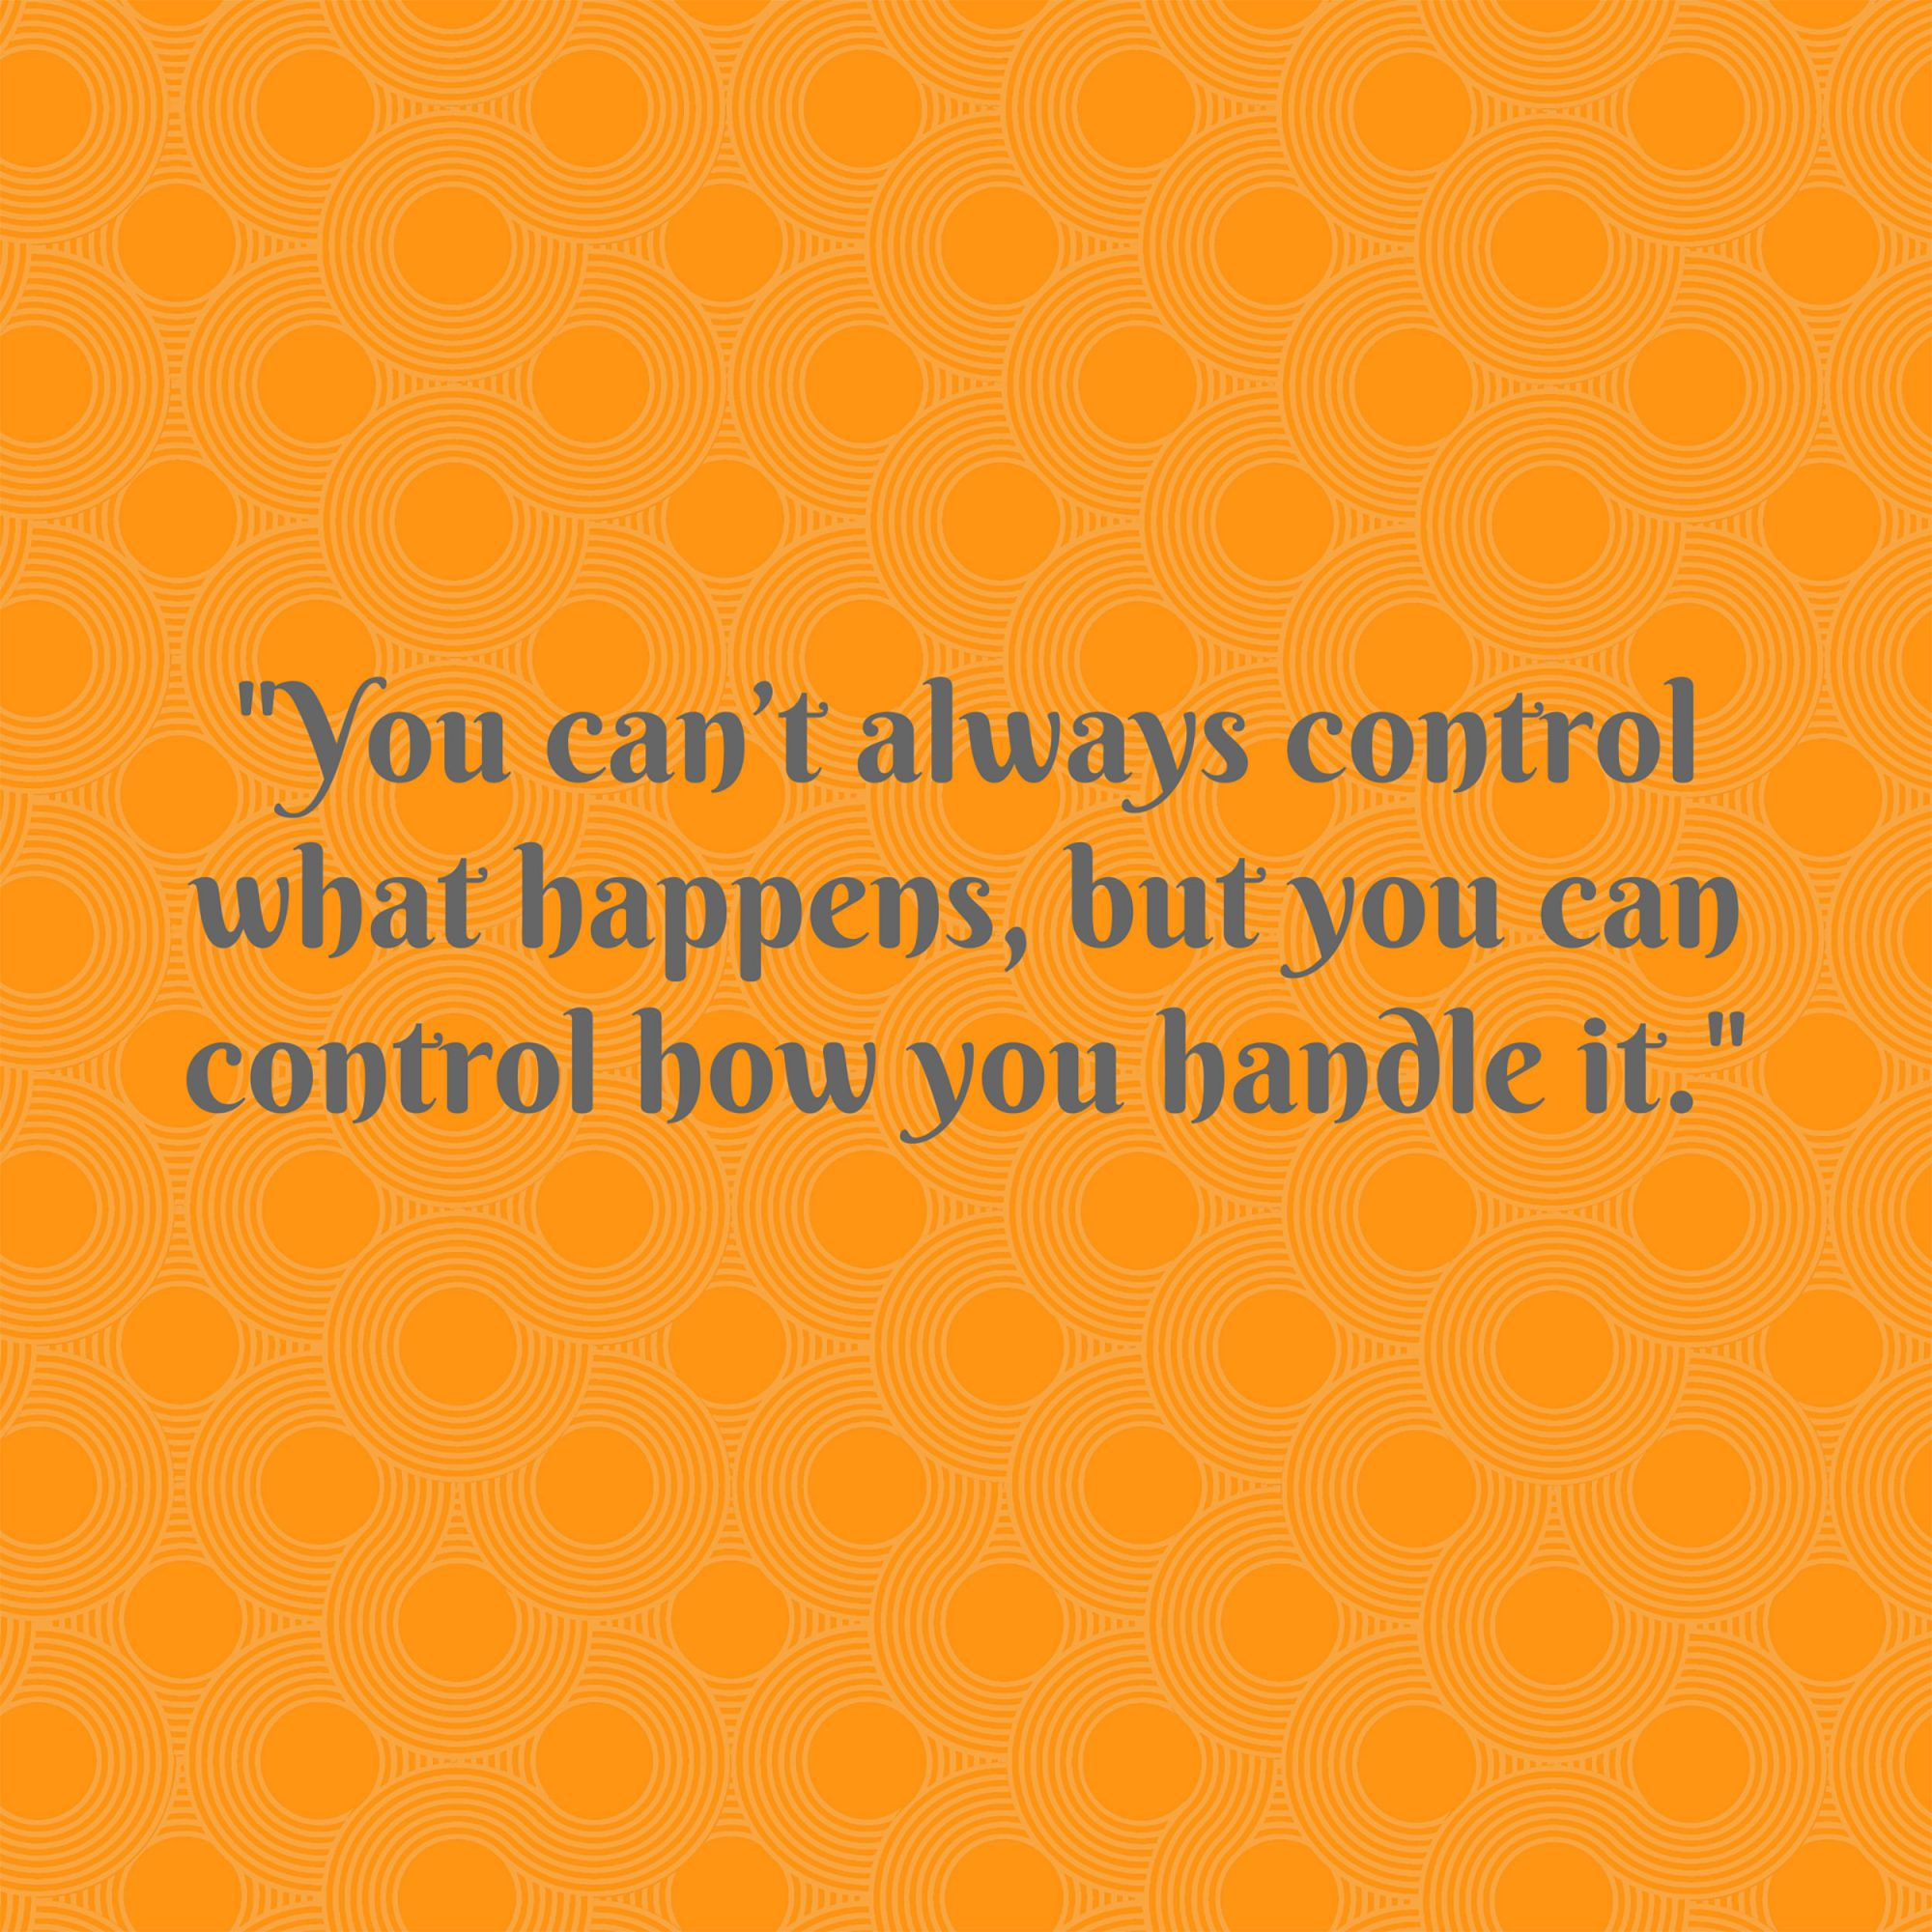 Pat Summitt on Control